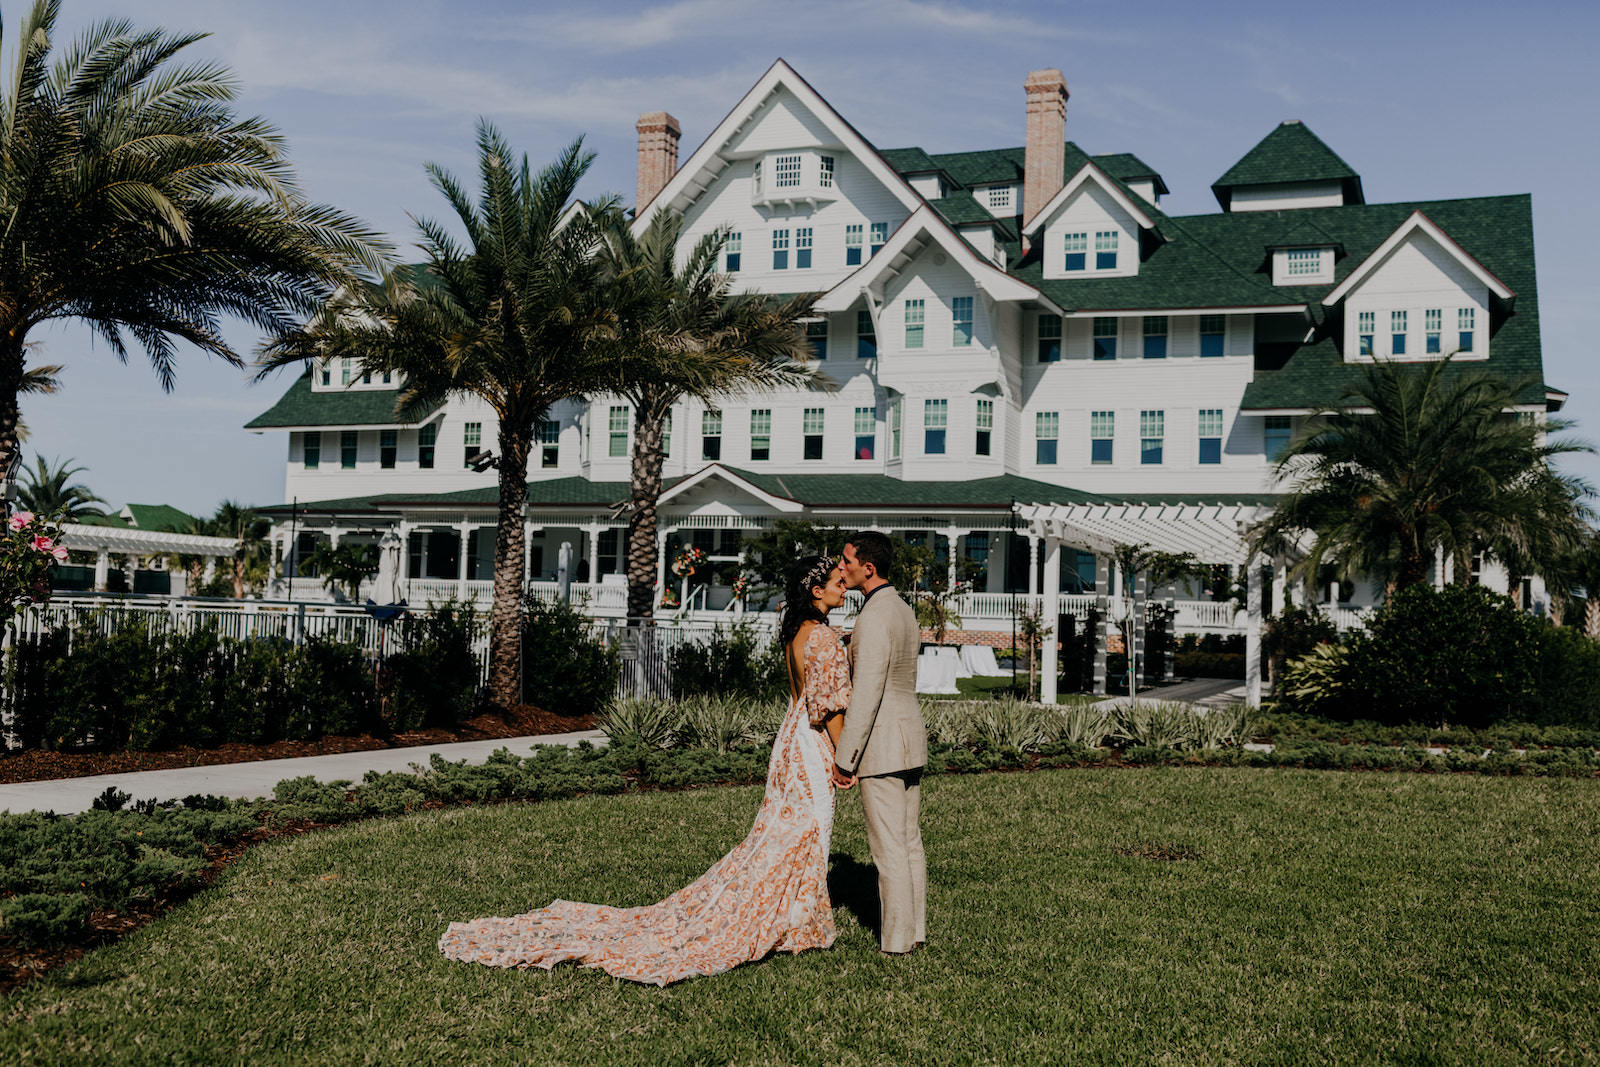 Outdoor Bride and Groom Wedding Portrait at Historic Clearwater Venue Belleview Inn   Boho Gold Bronze Embroidered Overlay Wedding Dress Bridal Gown with Illusion Sleeves and Train   Groom in Grey Khaki Linen Suit